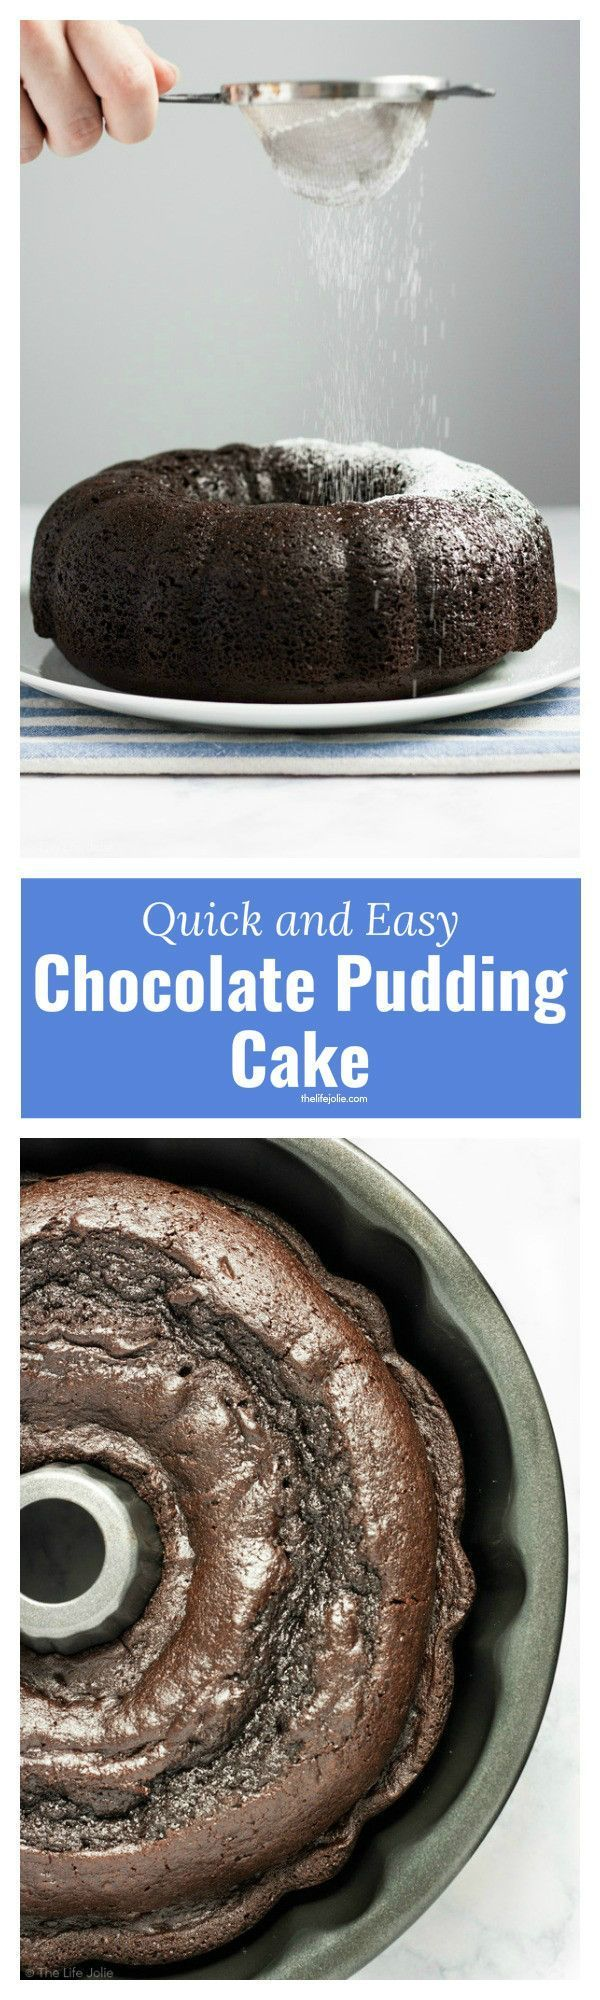 This quick and easy Chocolate Pudding Cake recipe is a delicious cake mix hack! There are only five simple ingredients and the result is the most perfectly moist cake youll ever taste. This is an awesome last-minute dessert to throw together and its so